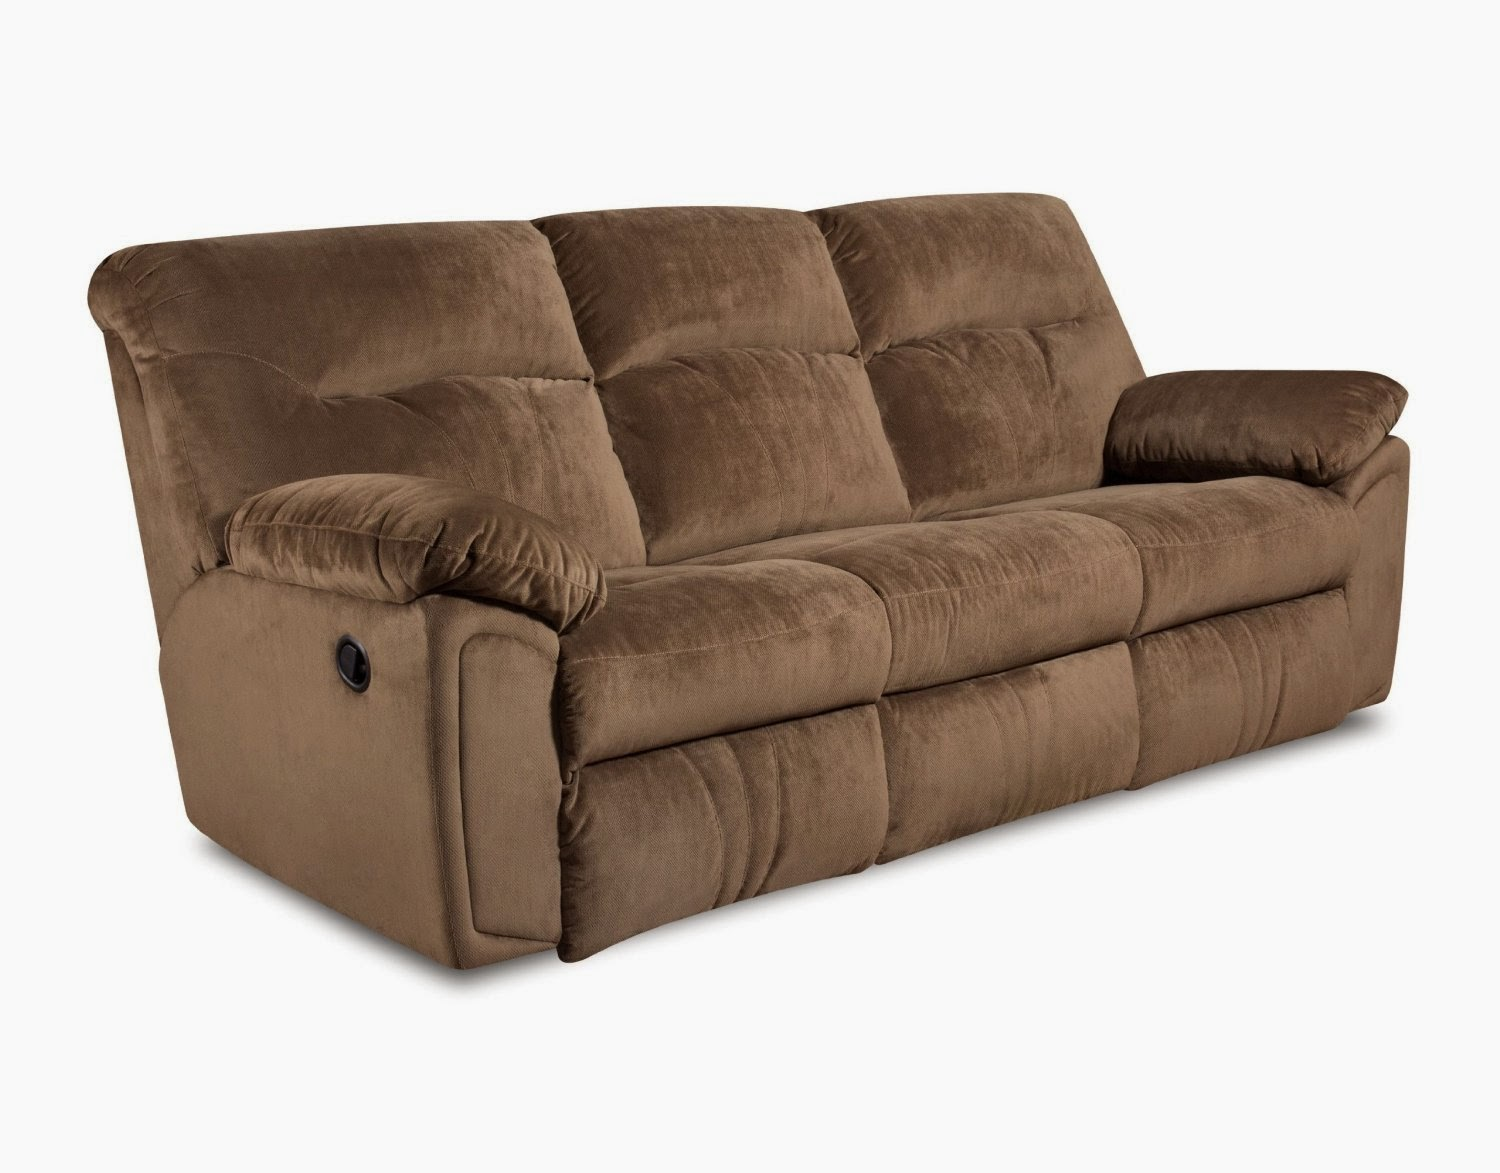 lazy boy reclining sofa and loveseat koket kelley sectional car interior design